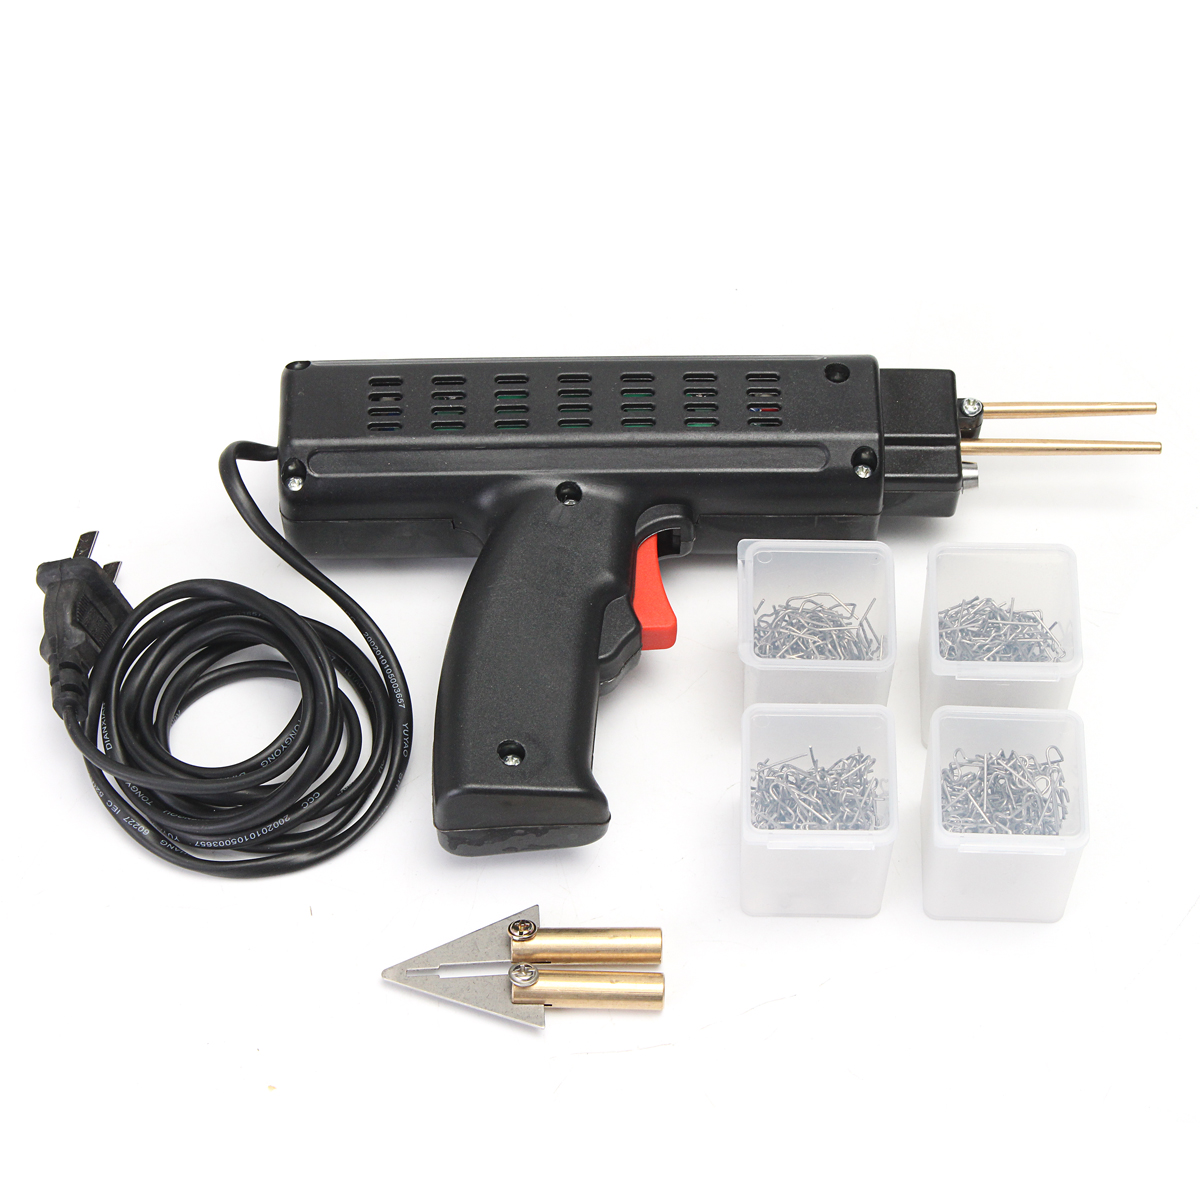 220V Plastic Welder Car Bumper Repairing Machine Repair Hot Stapler with 200pcs Staples